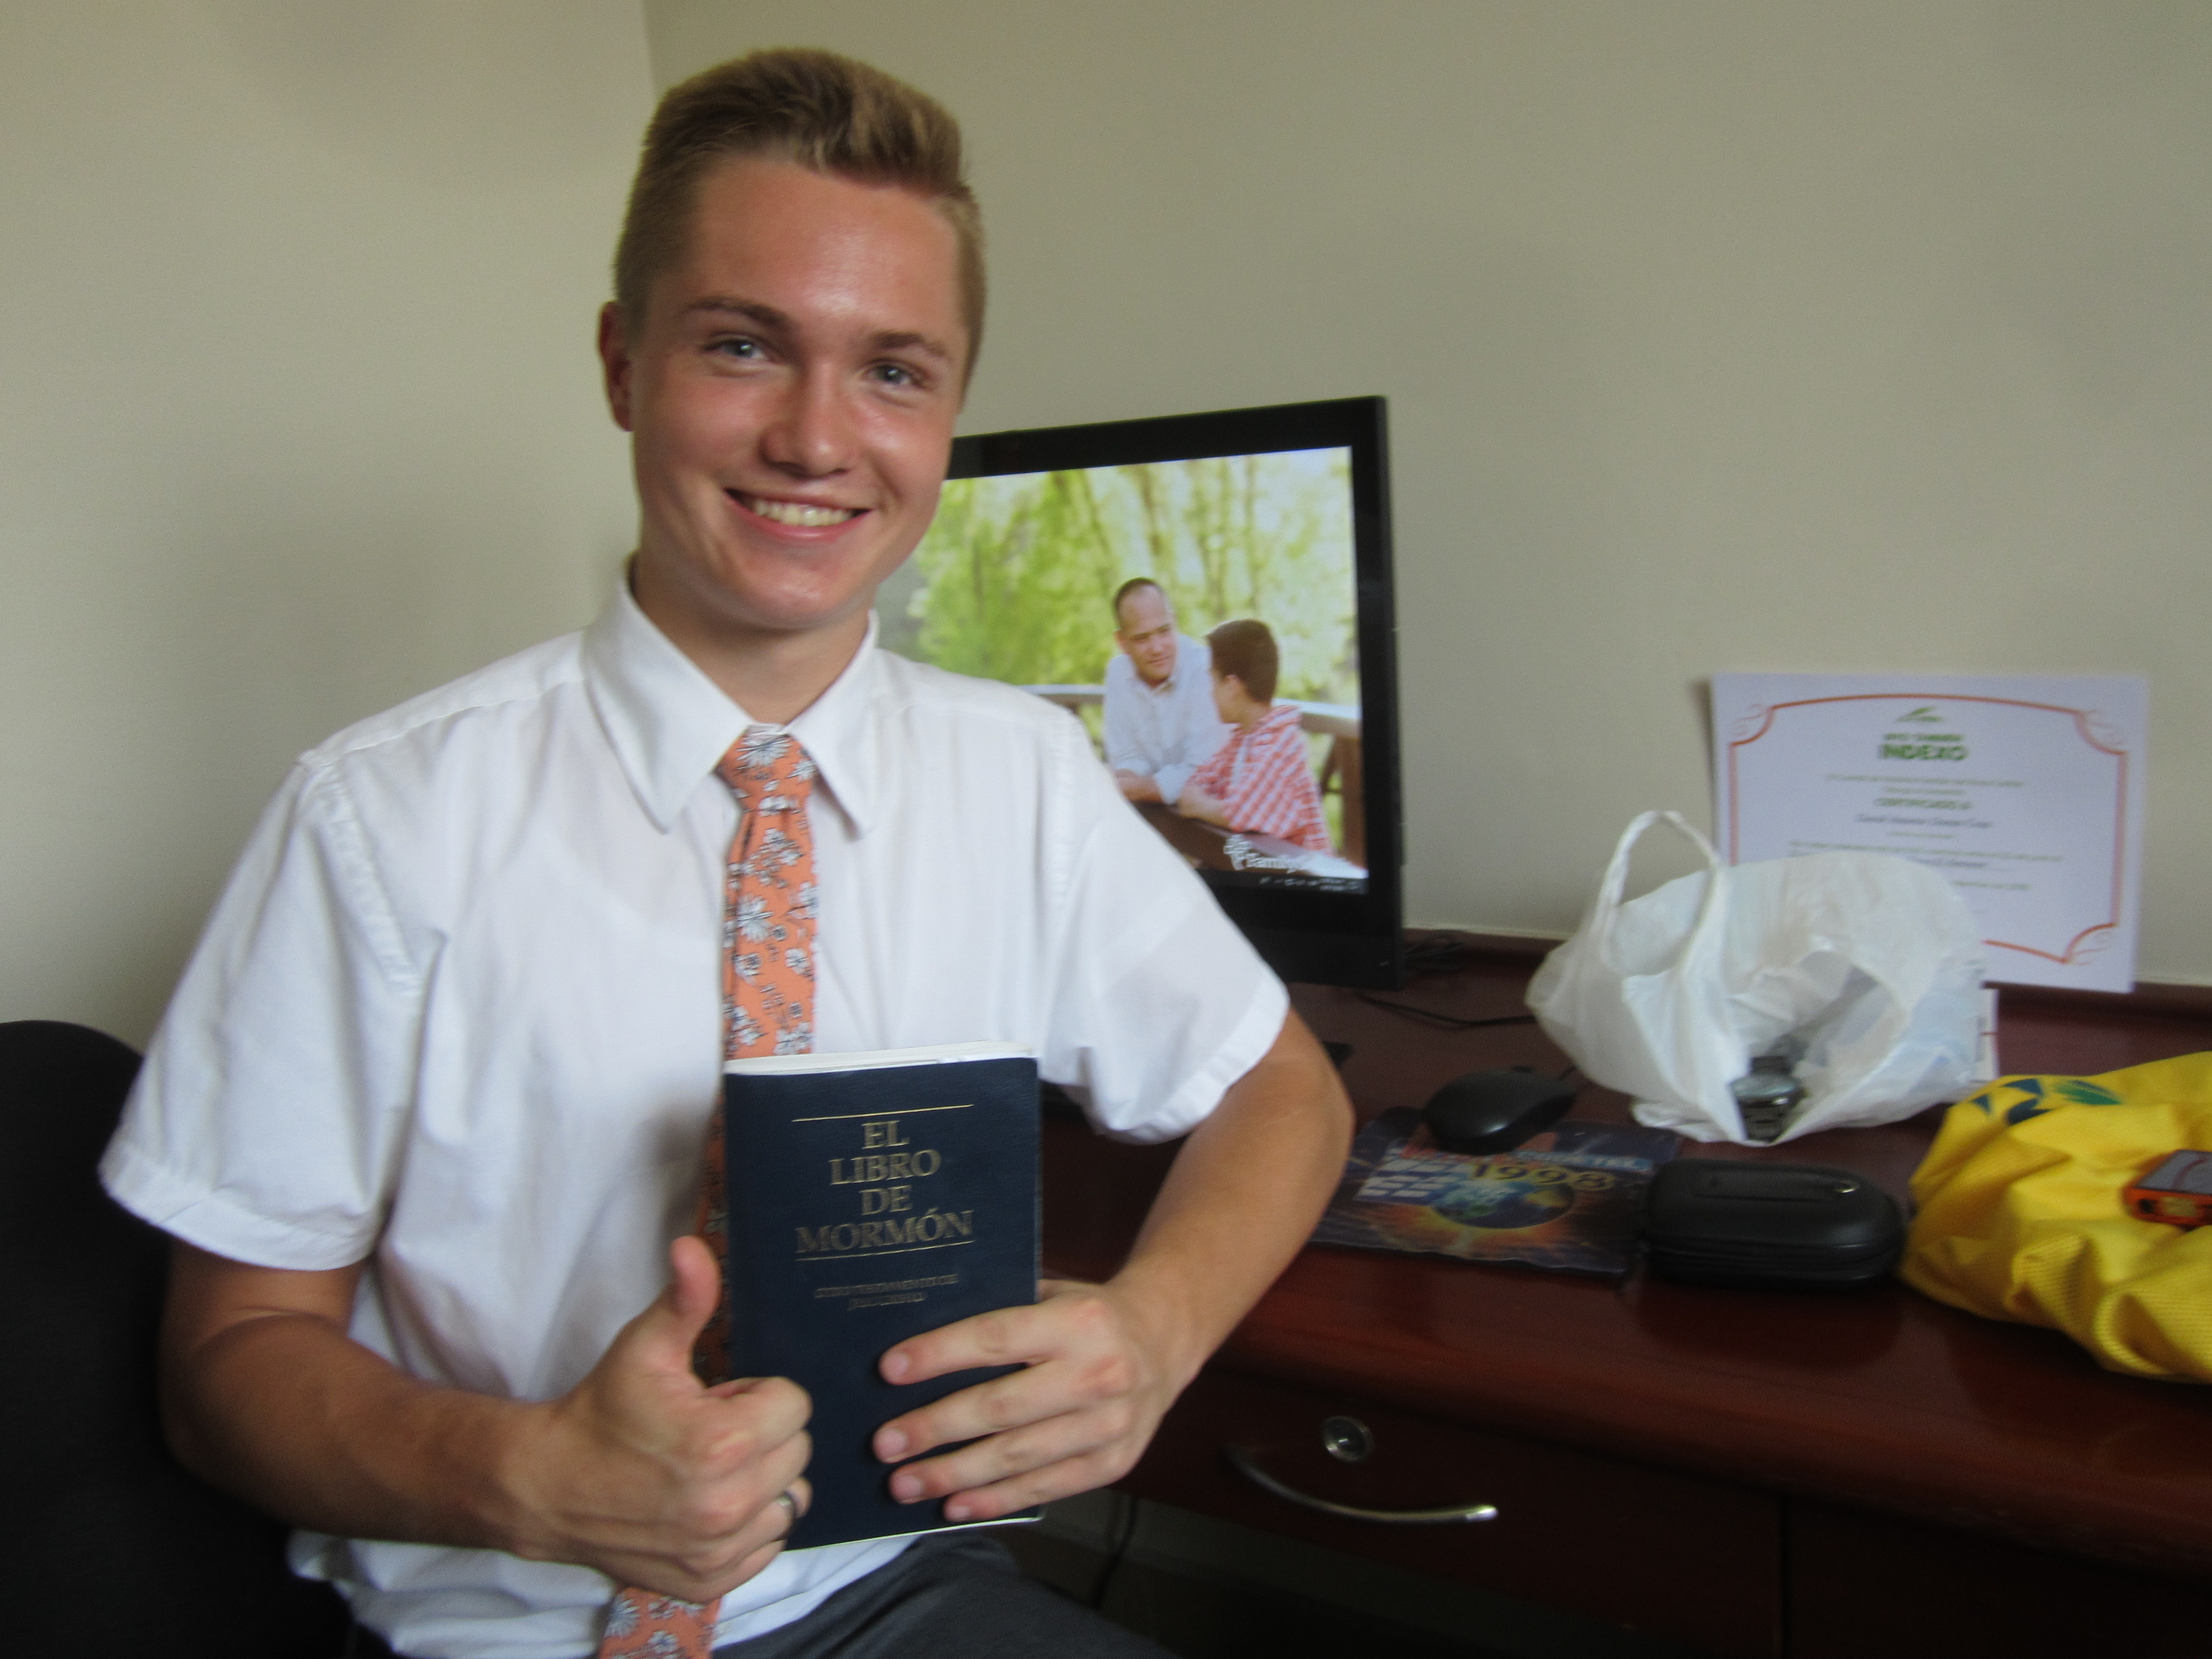 Elder Brennan Conrad, 18, of Hyde Park, Utah, served as a missionary of The Church of Jesus Christ of Latter-day Saints in the Dominican Republic Santo Domingo East Mission from August 2018 until he died in an accidental fall from his apartment roof in Santo Domingo on Wednesday, Feb. 20, 2019.